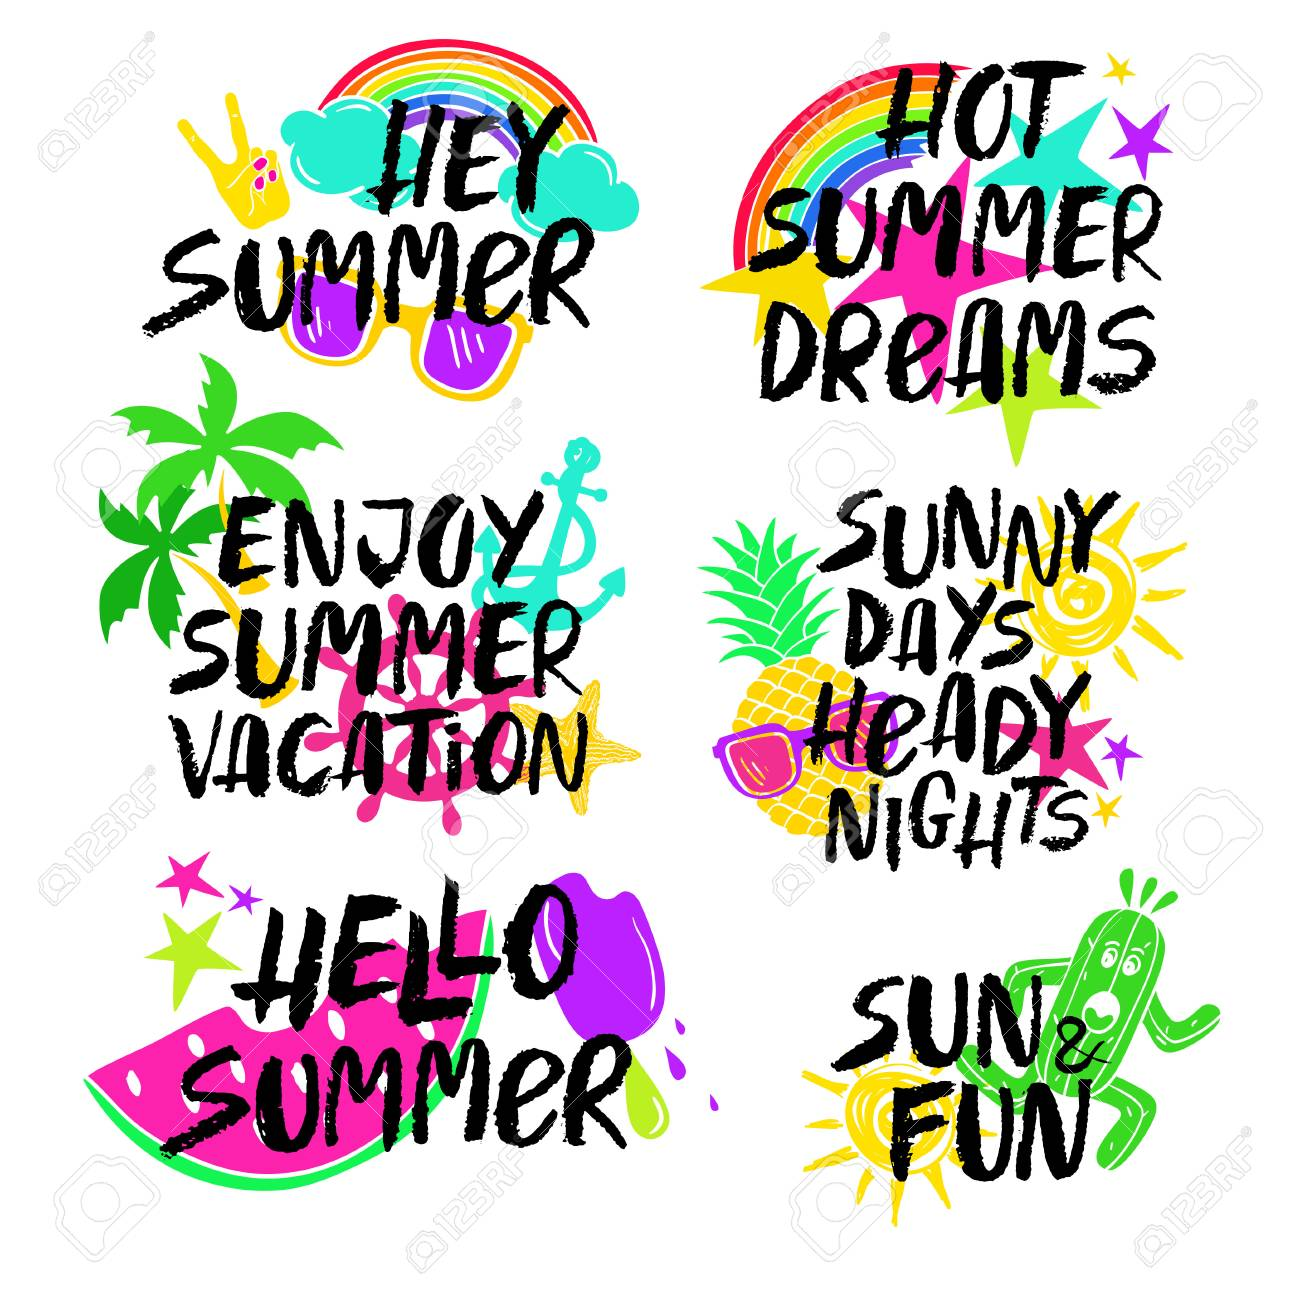 Inspirational Phrases Colorful Collection Of Summer Inspirational And Motivational